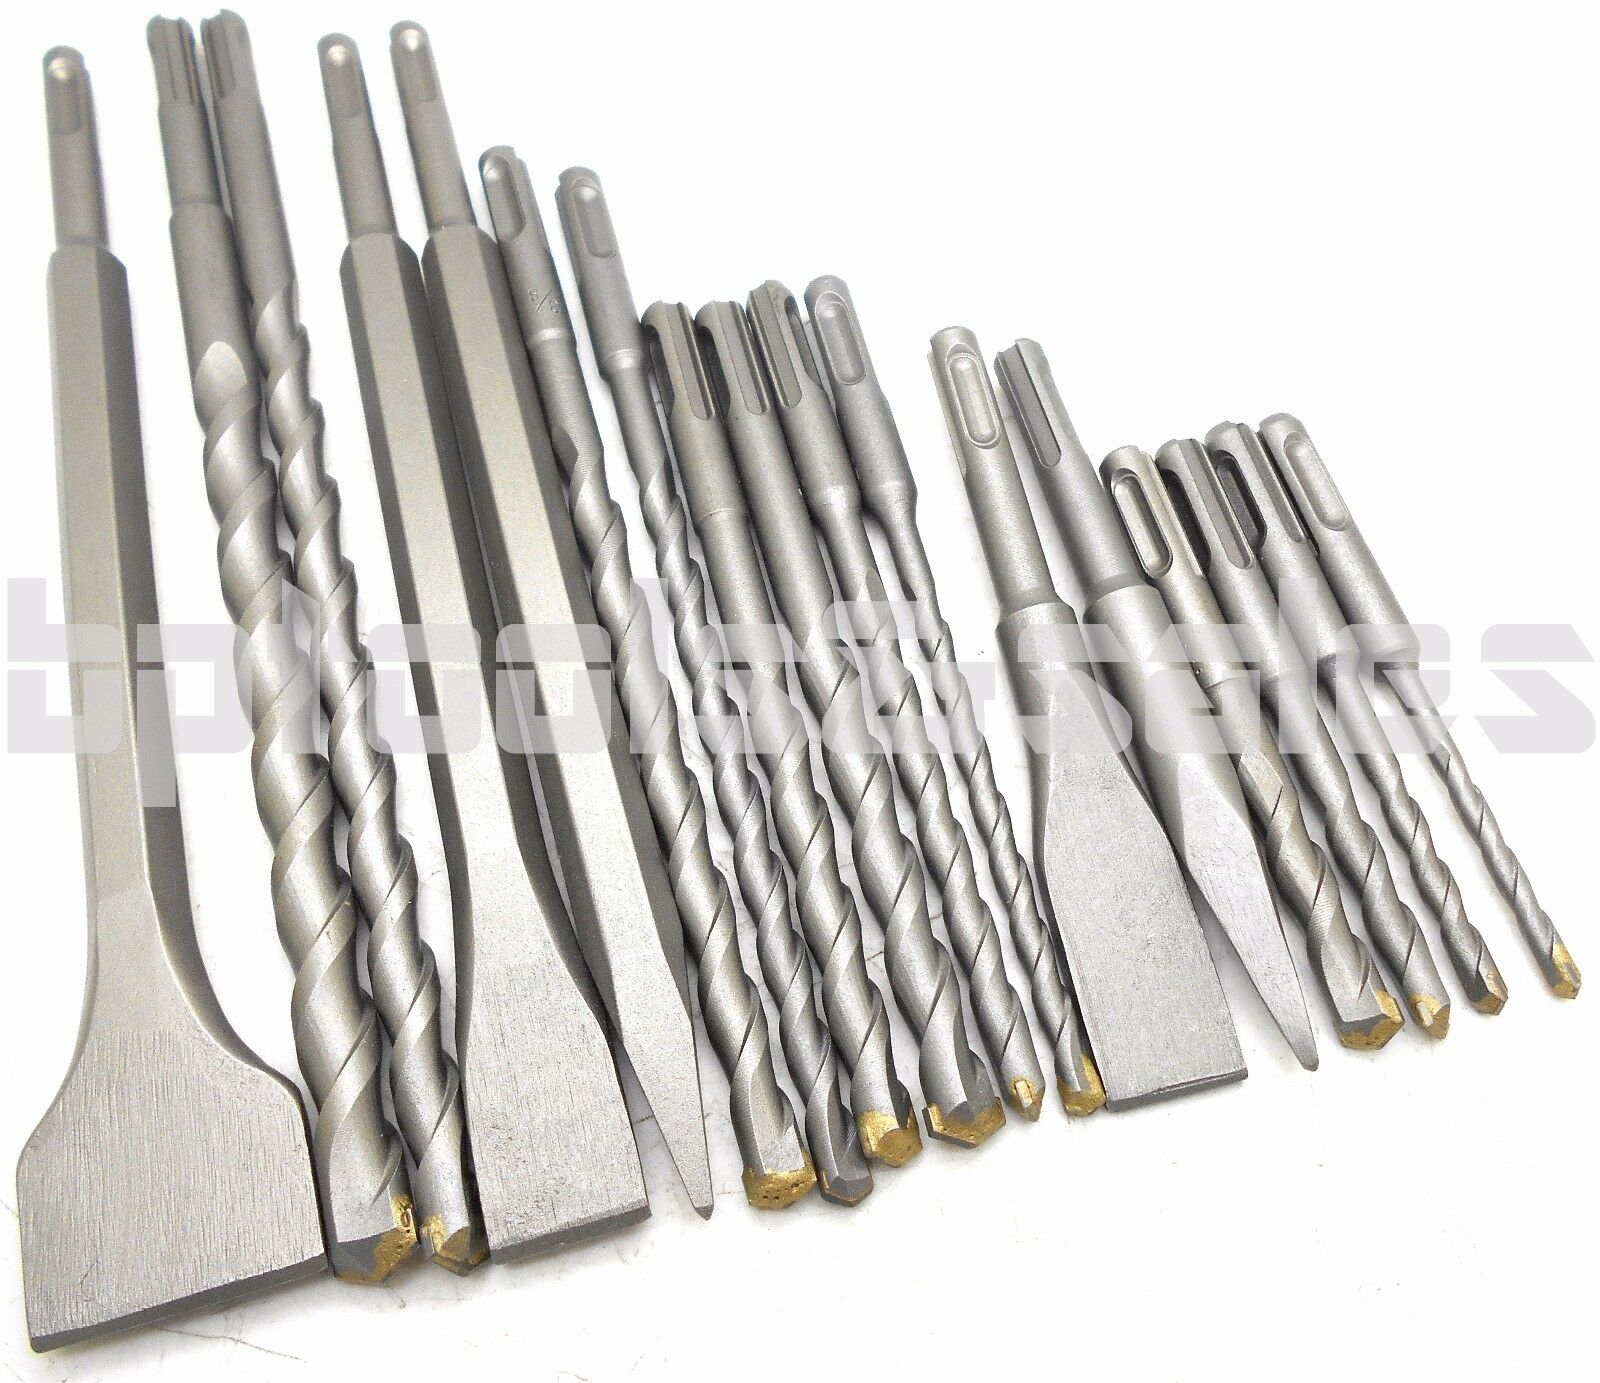 NEW 17 PC SDS PLUS ROTARY HAMMER BITS DRILL BIT & CHISEL GROOVE CONCRETE